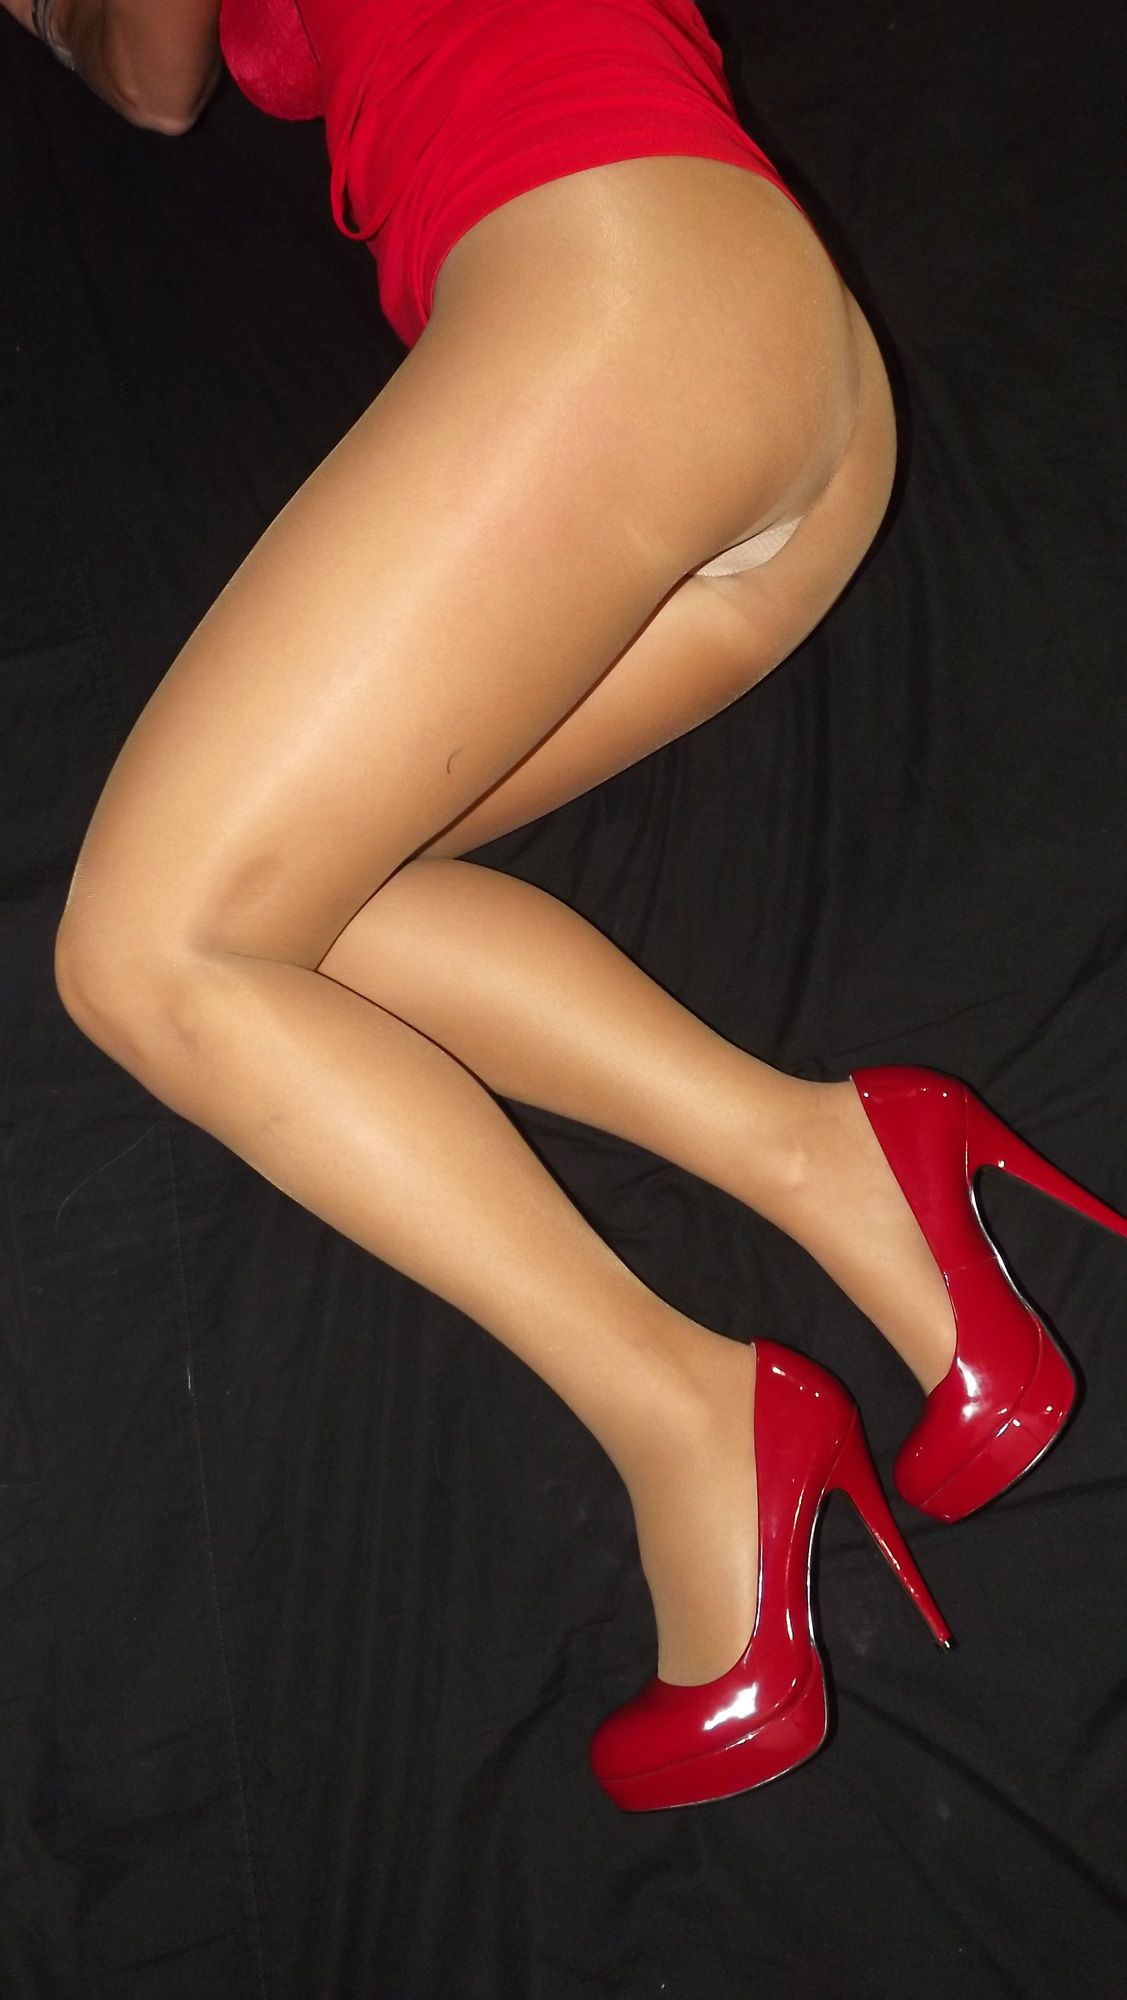 Apologise, but, Red high heels and stockings porn images you